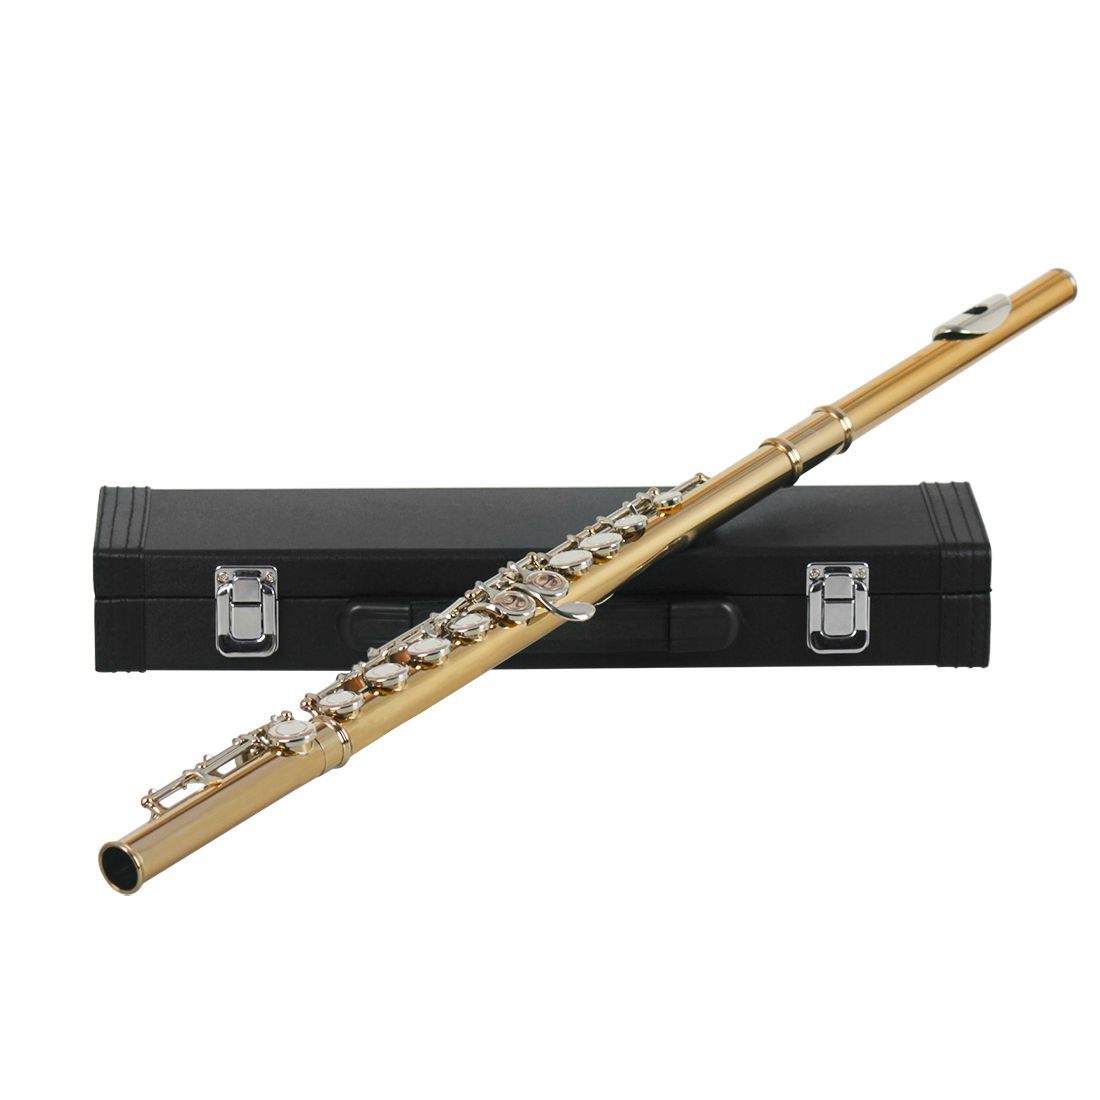 FSTE Western Concert Flute 16 Holes C Key Cupronickel Musical Instrument with Cleaning Cloth Stick Gloves Screwdriver Gold